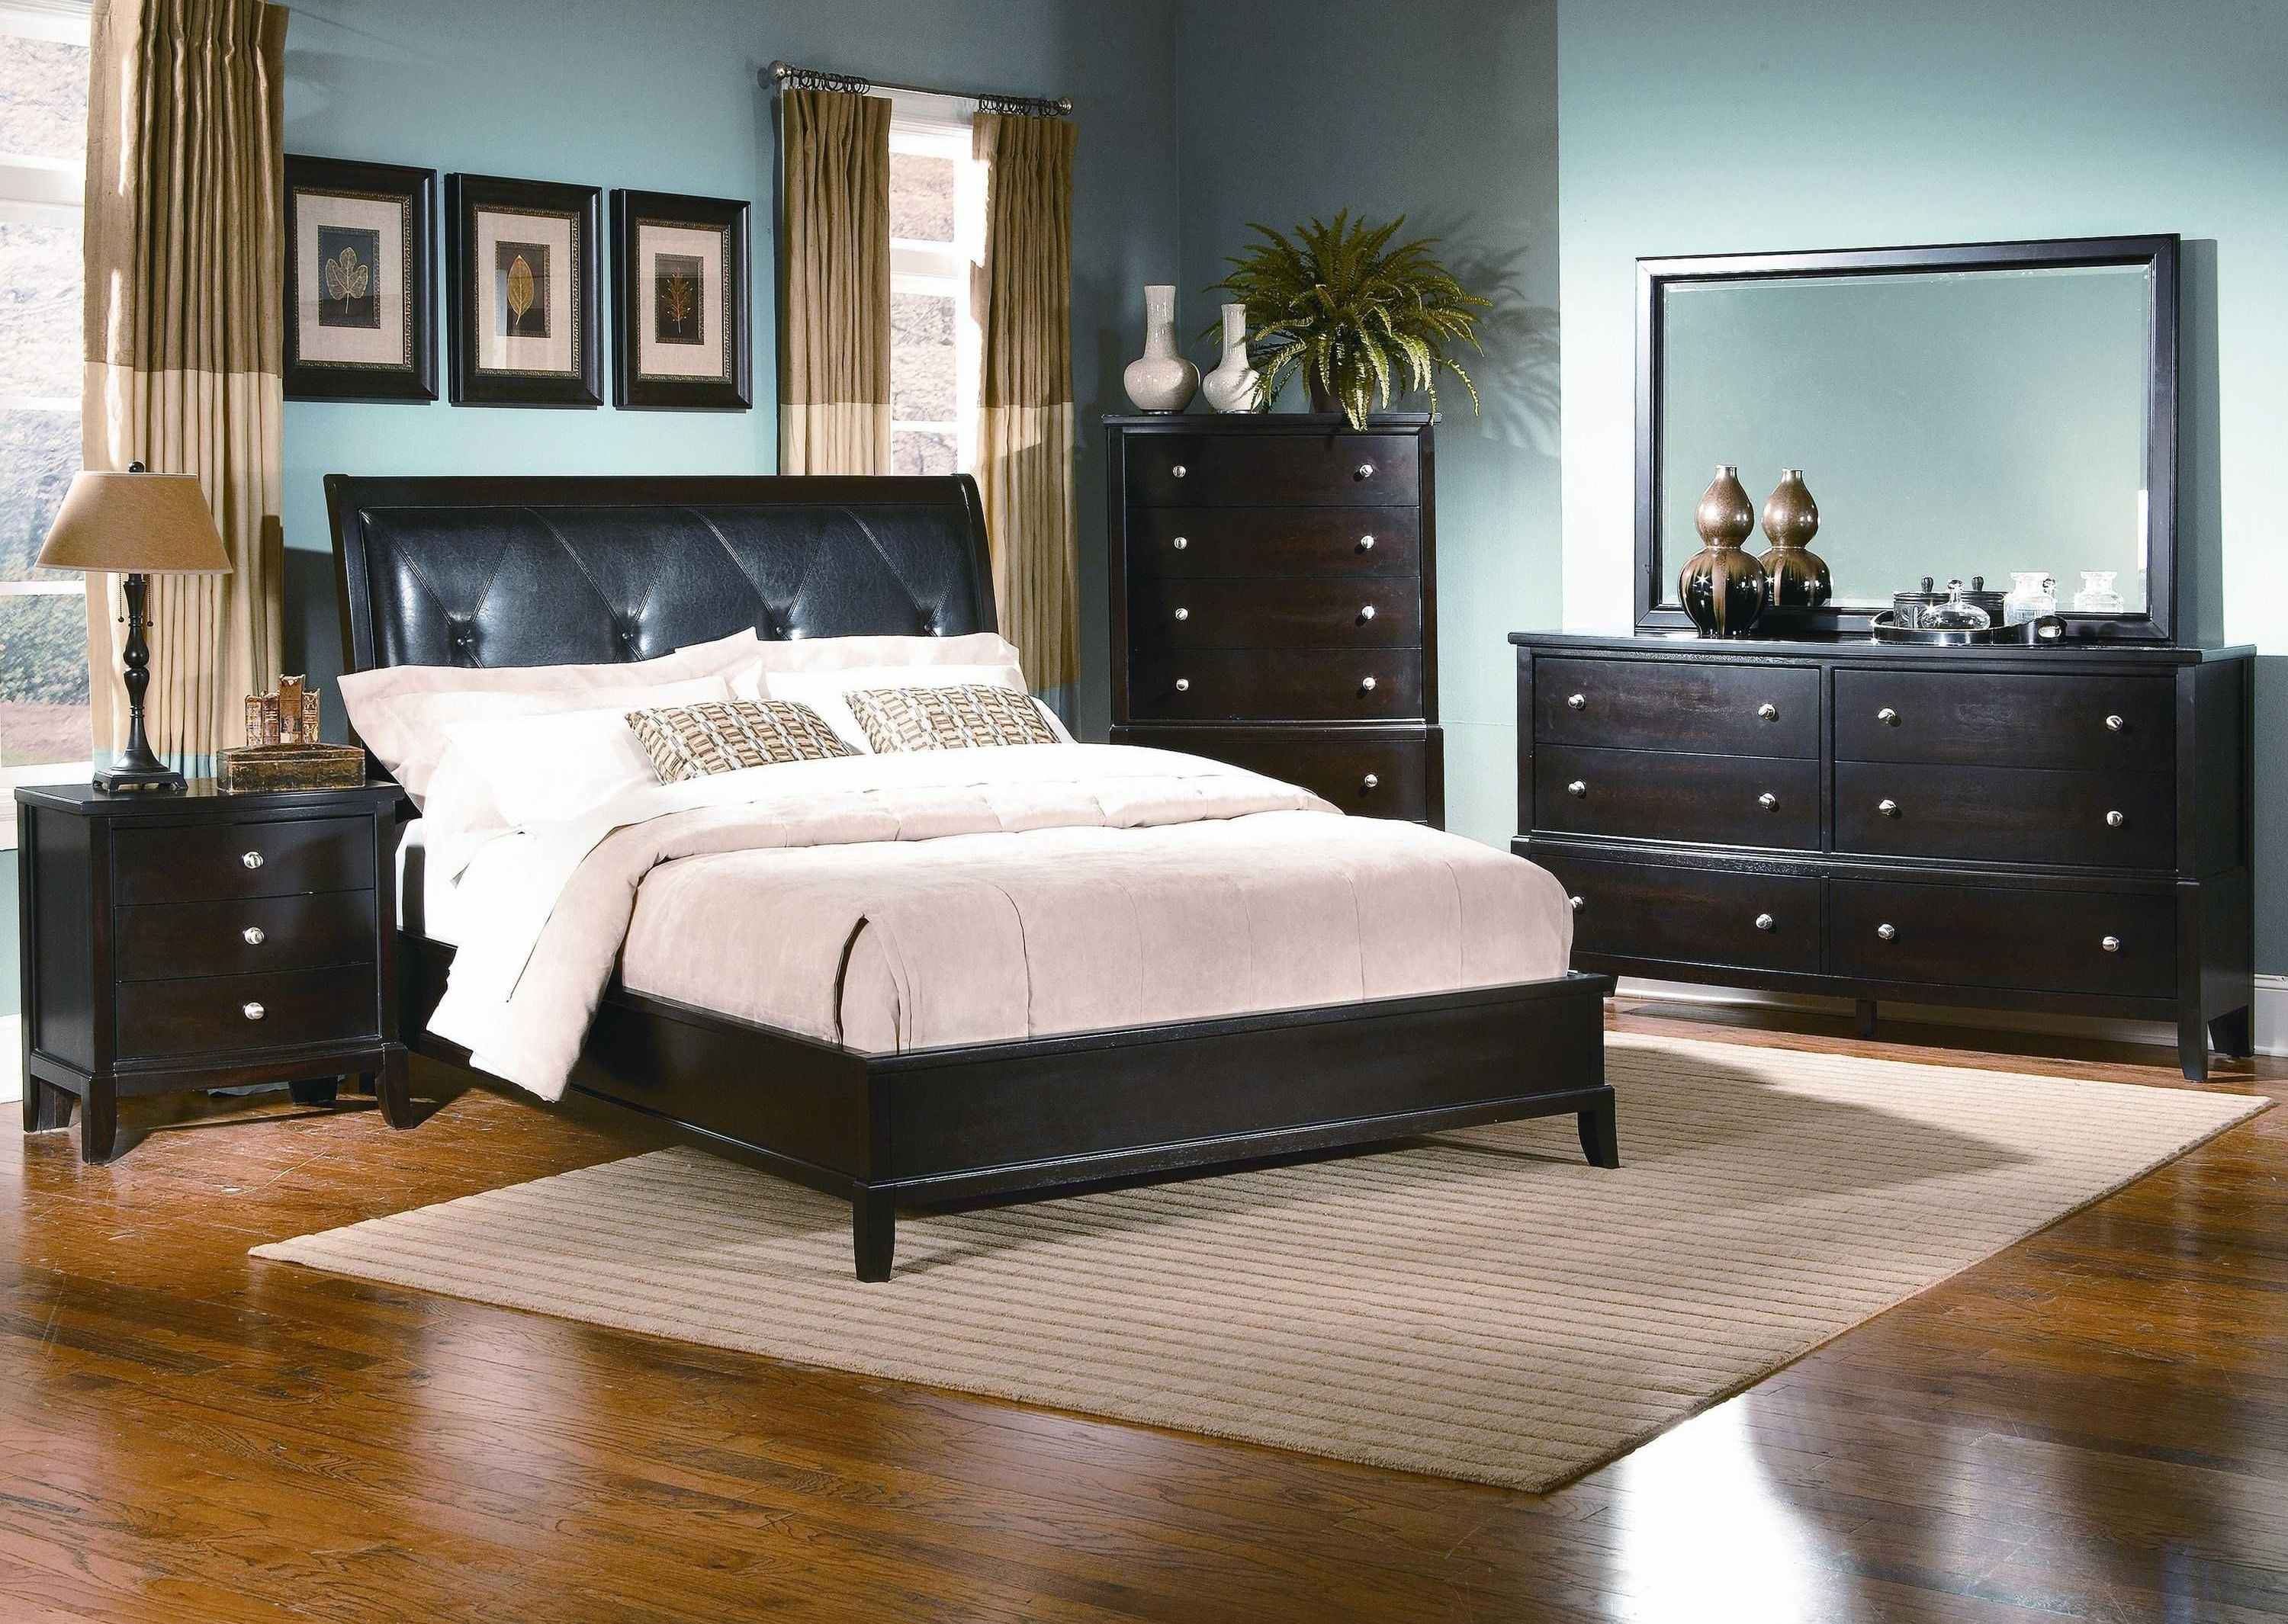 Marlo Furniture Bedroom Sets Leonardo Bedroom Bedroom Sets Collections Atlantic Bedding